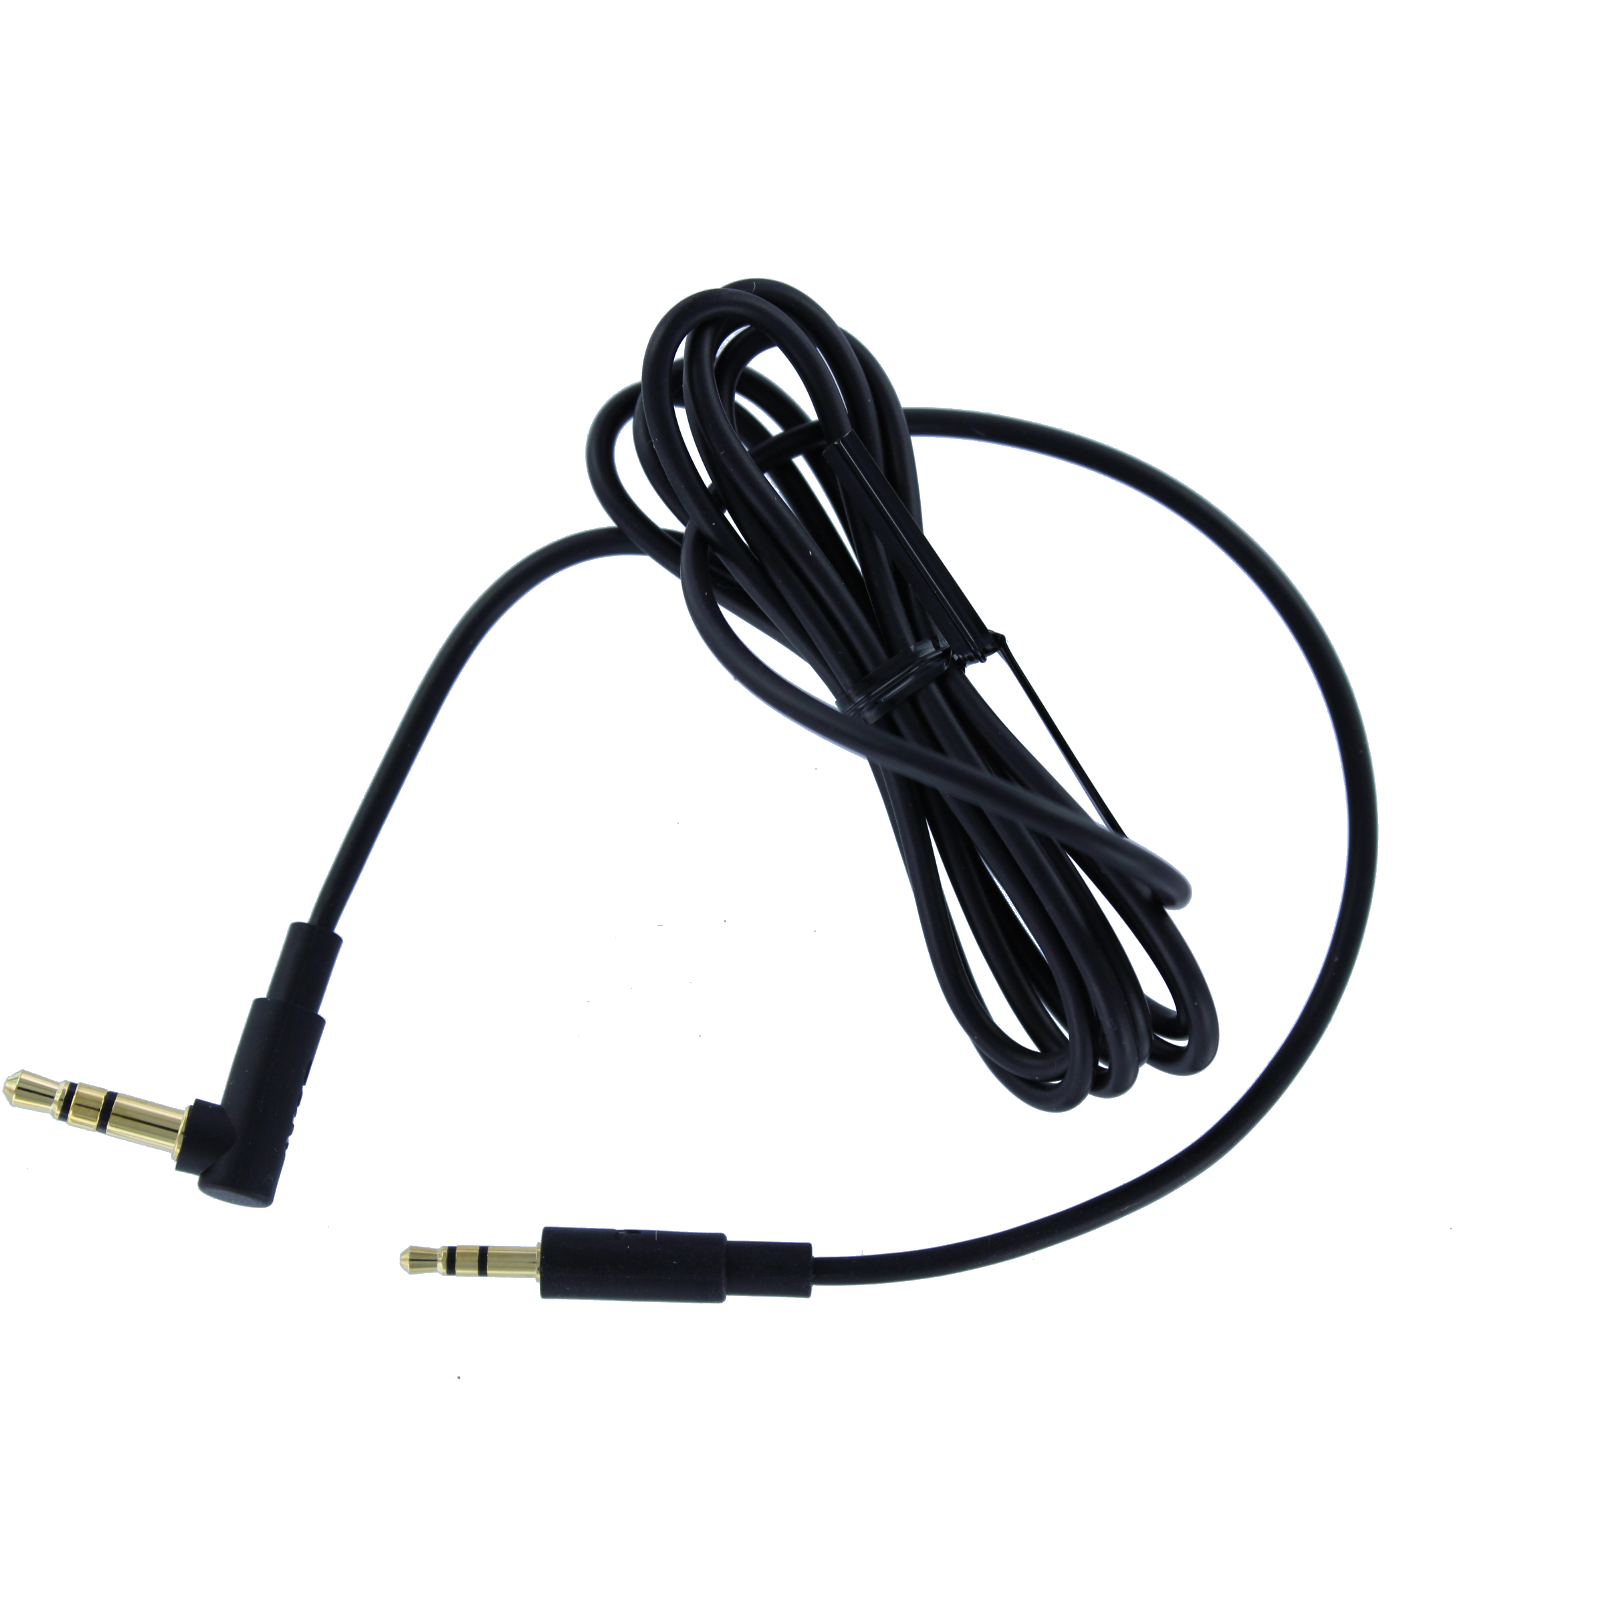 AKG Audio cable for Y50 - Black - Audio cable - Hero